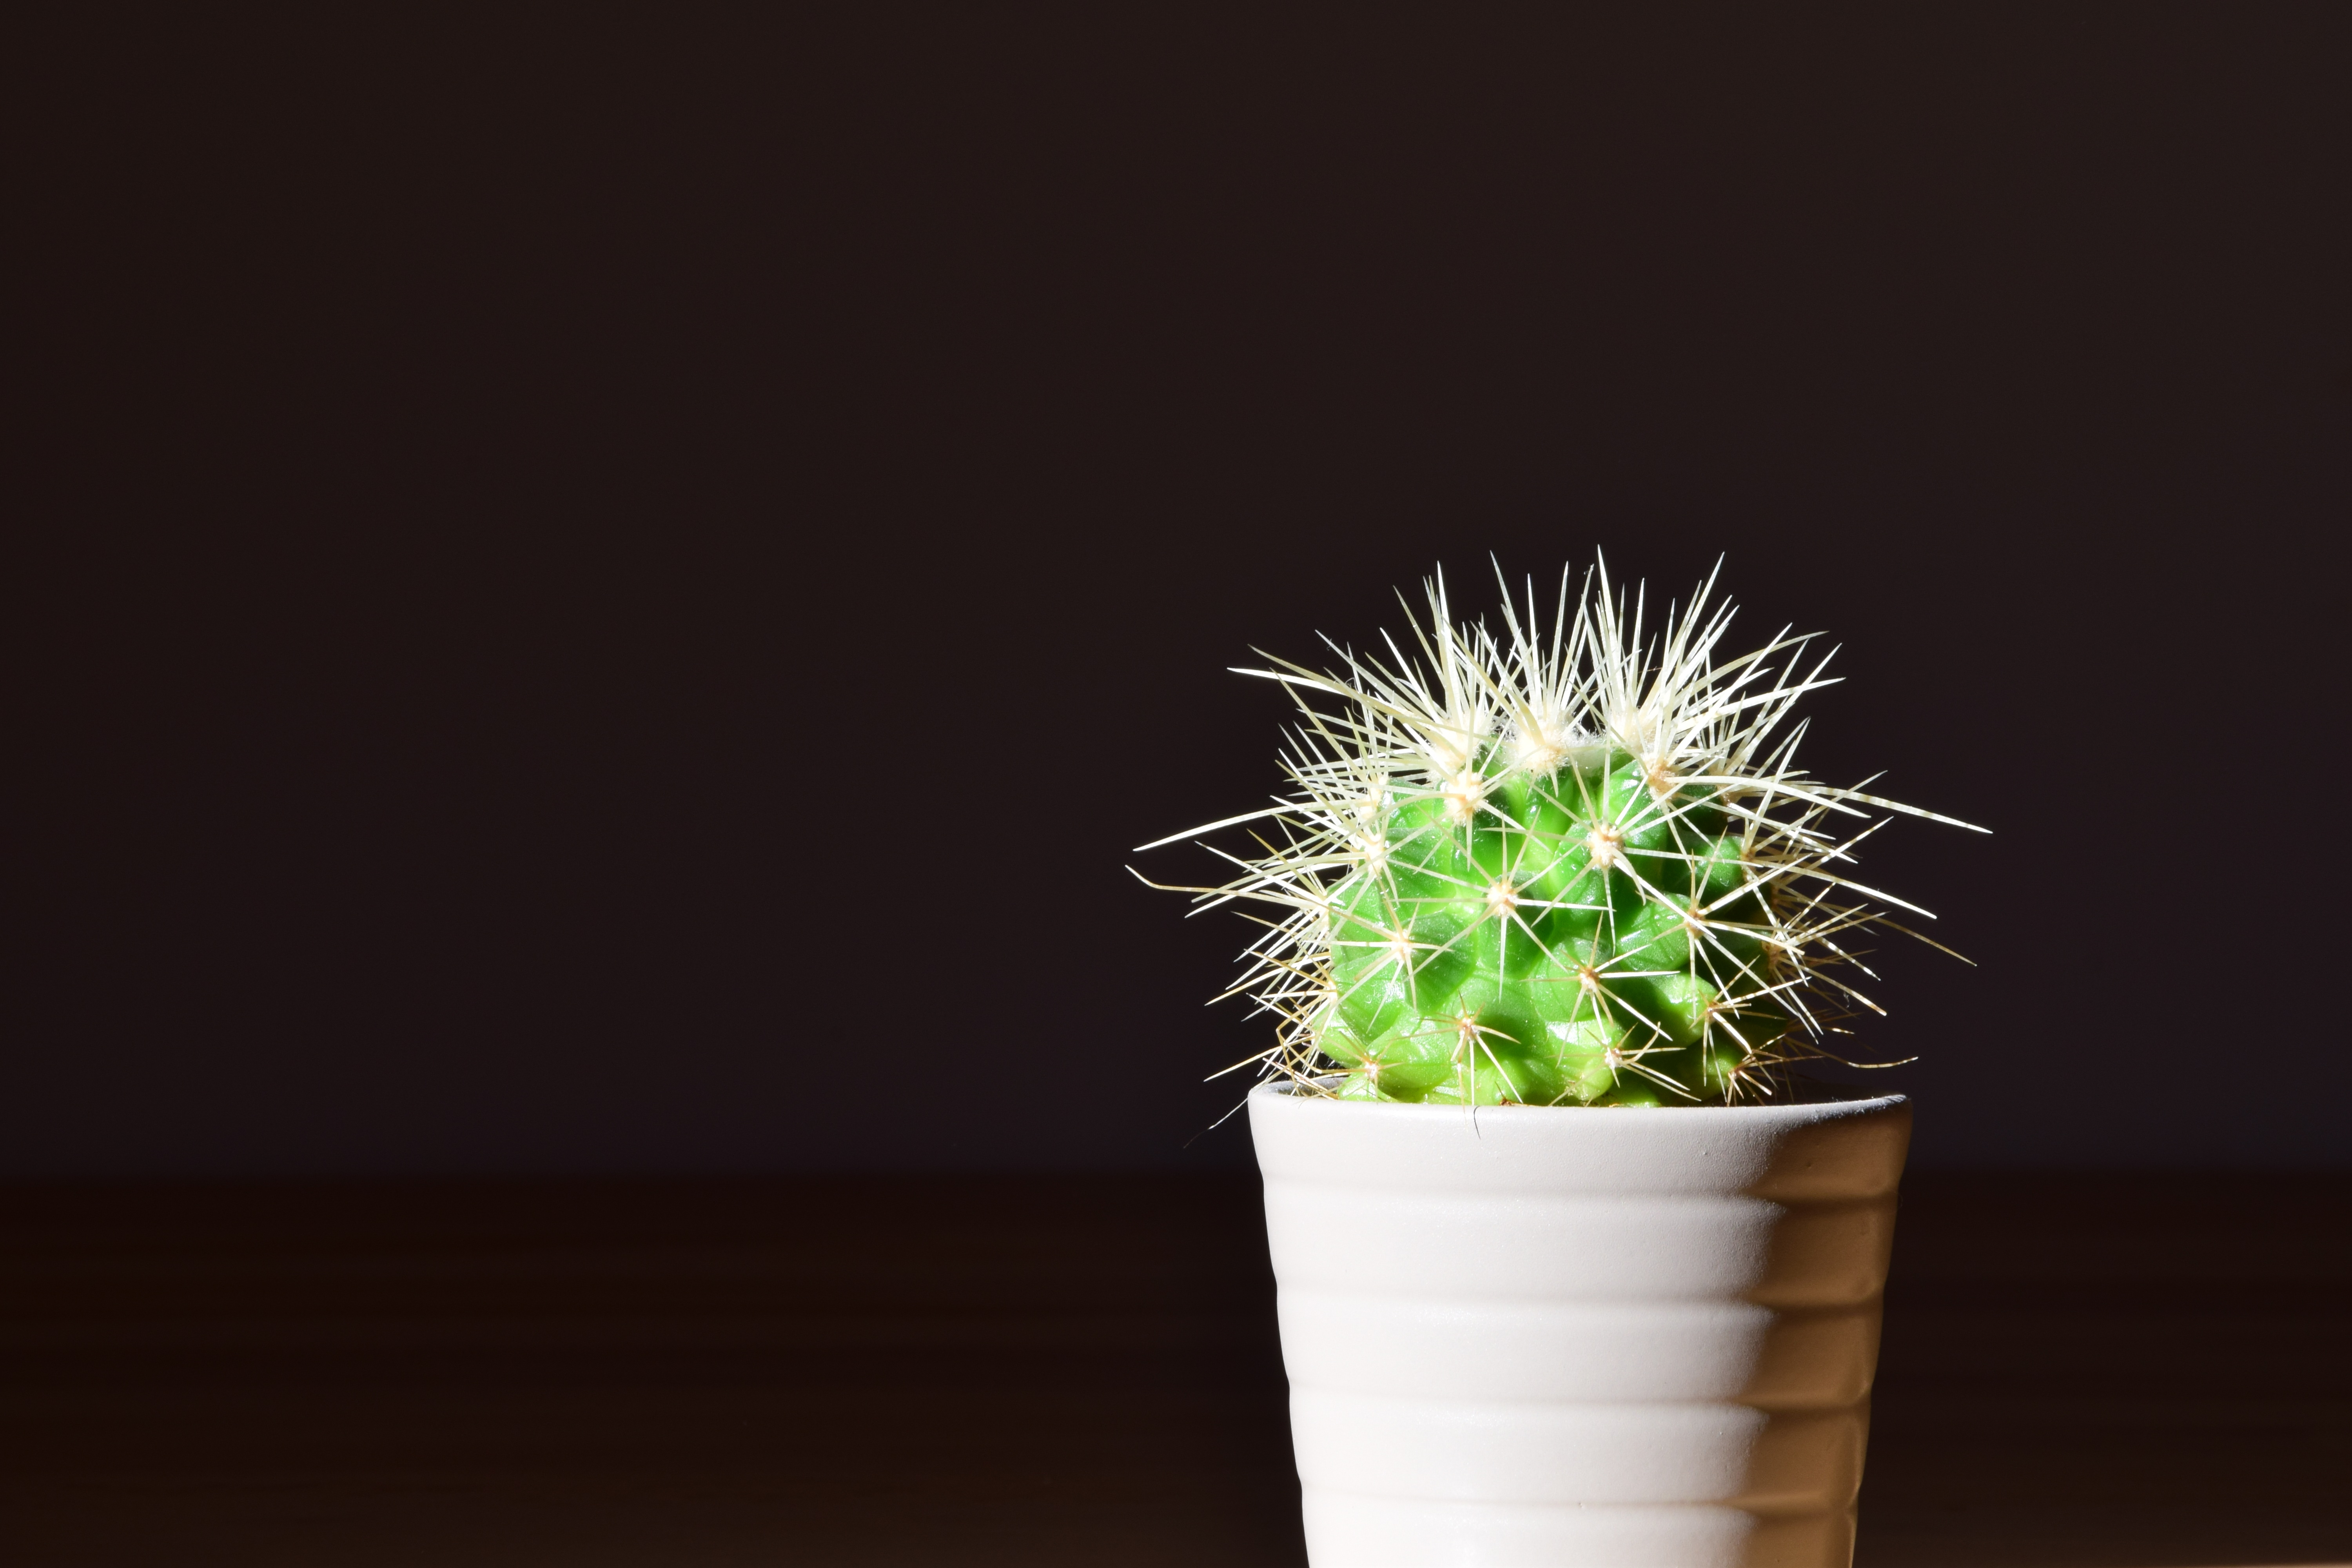 Best Cactus wallpapers for phone screen